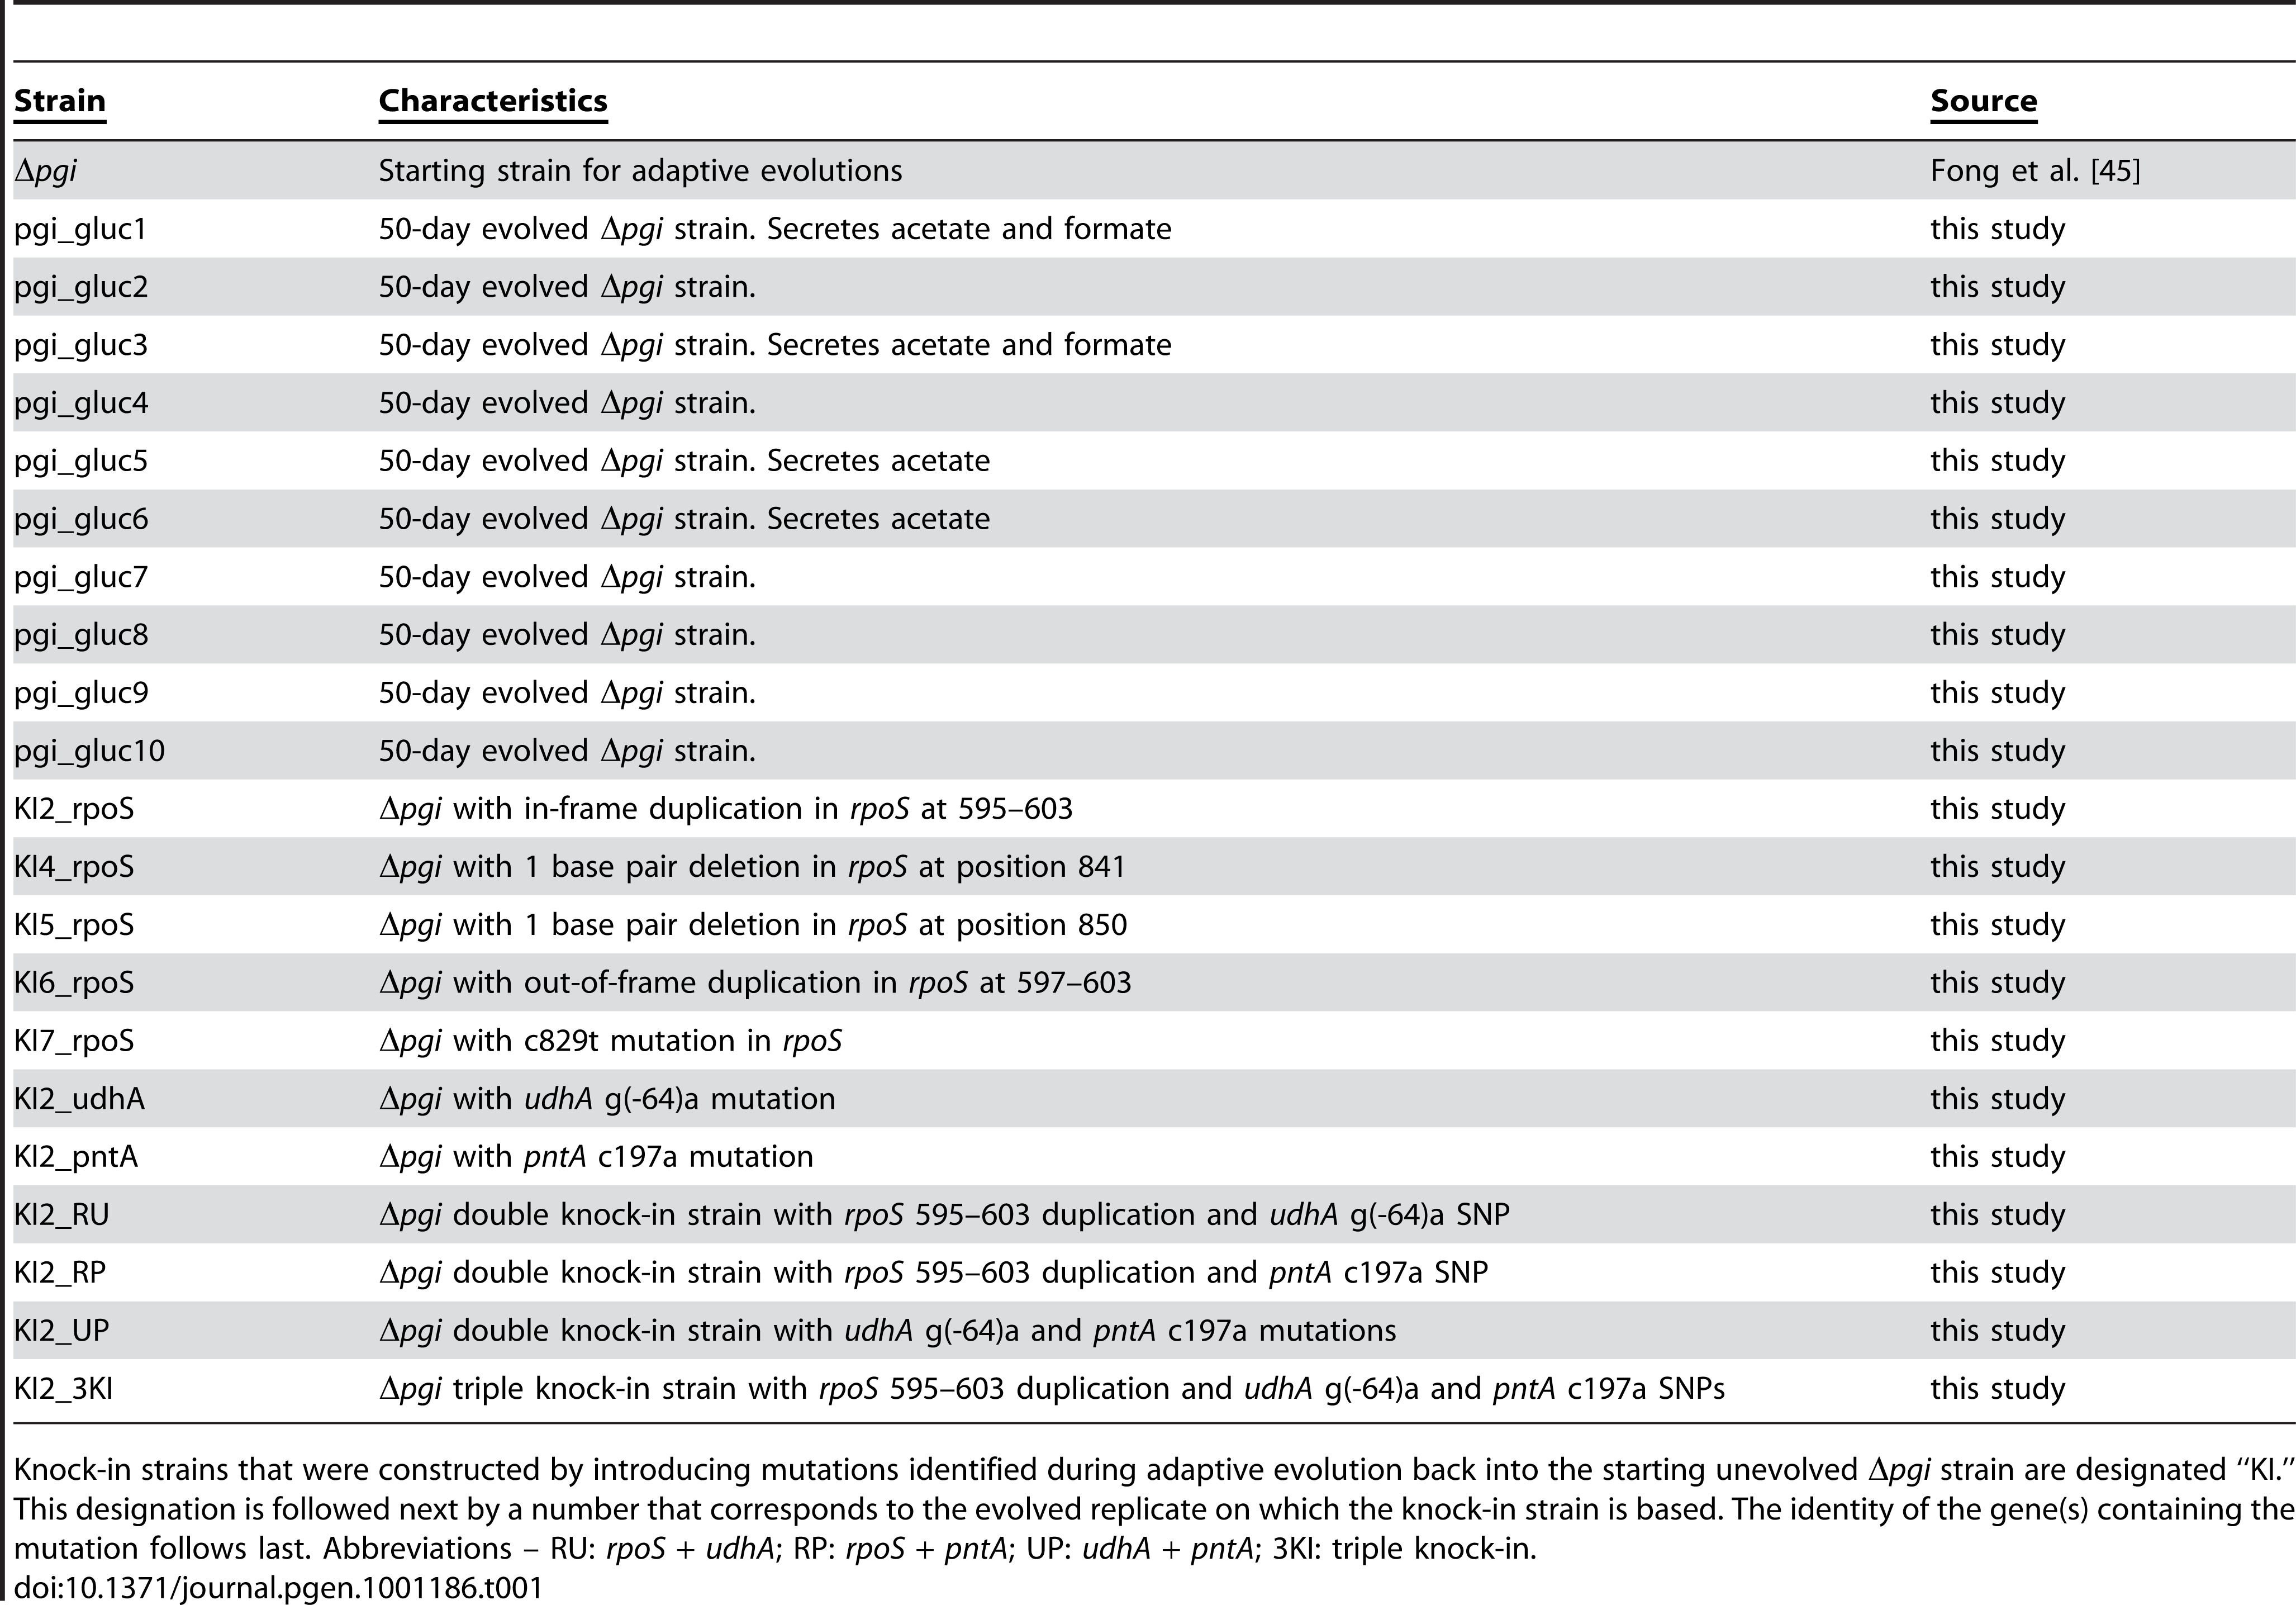 Strains used in this study.